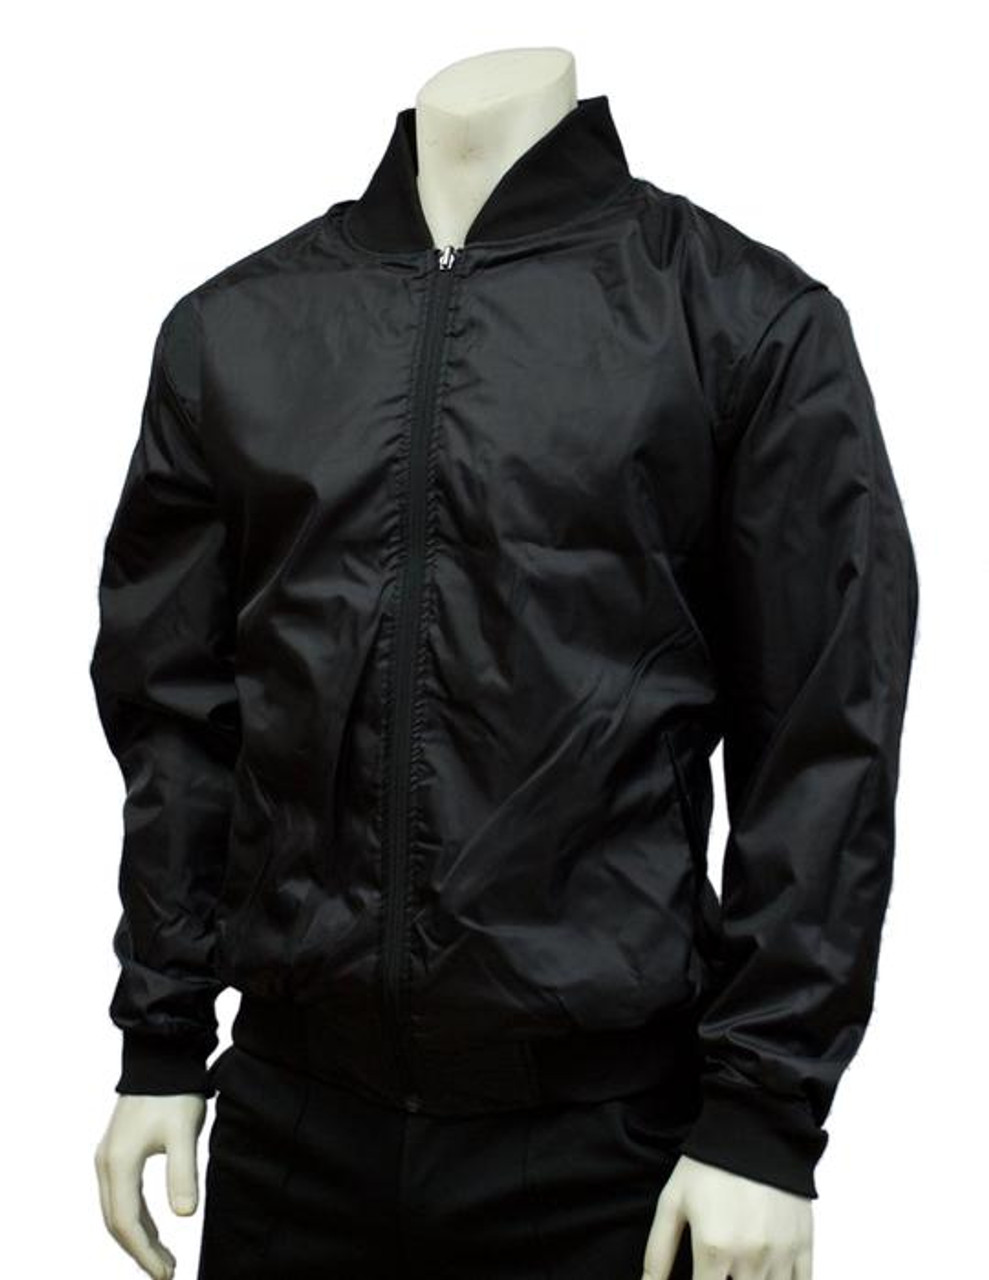 Smitty Official's Apparel Reversible Lined Football Referee Jacket